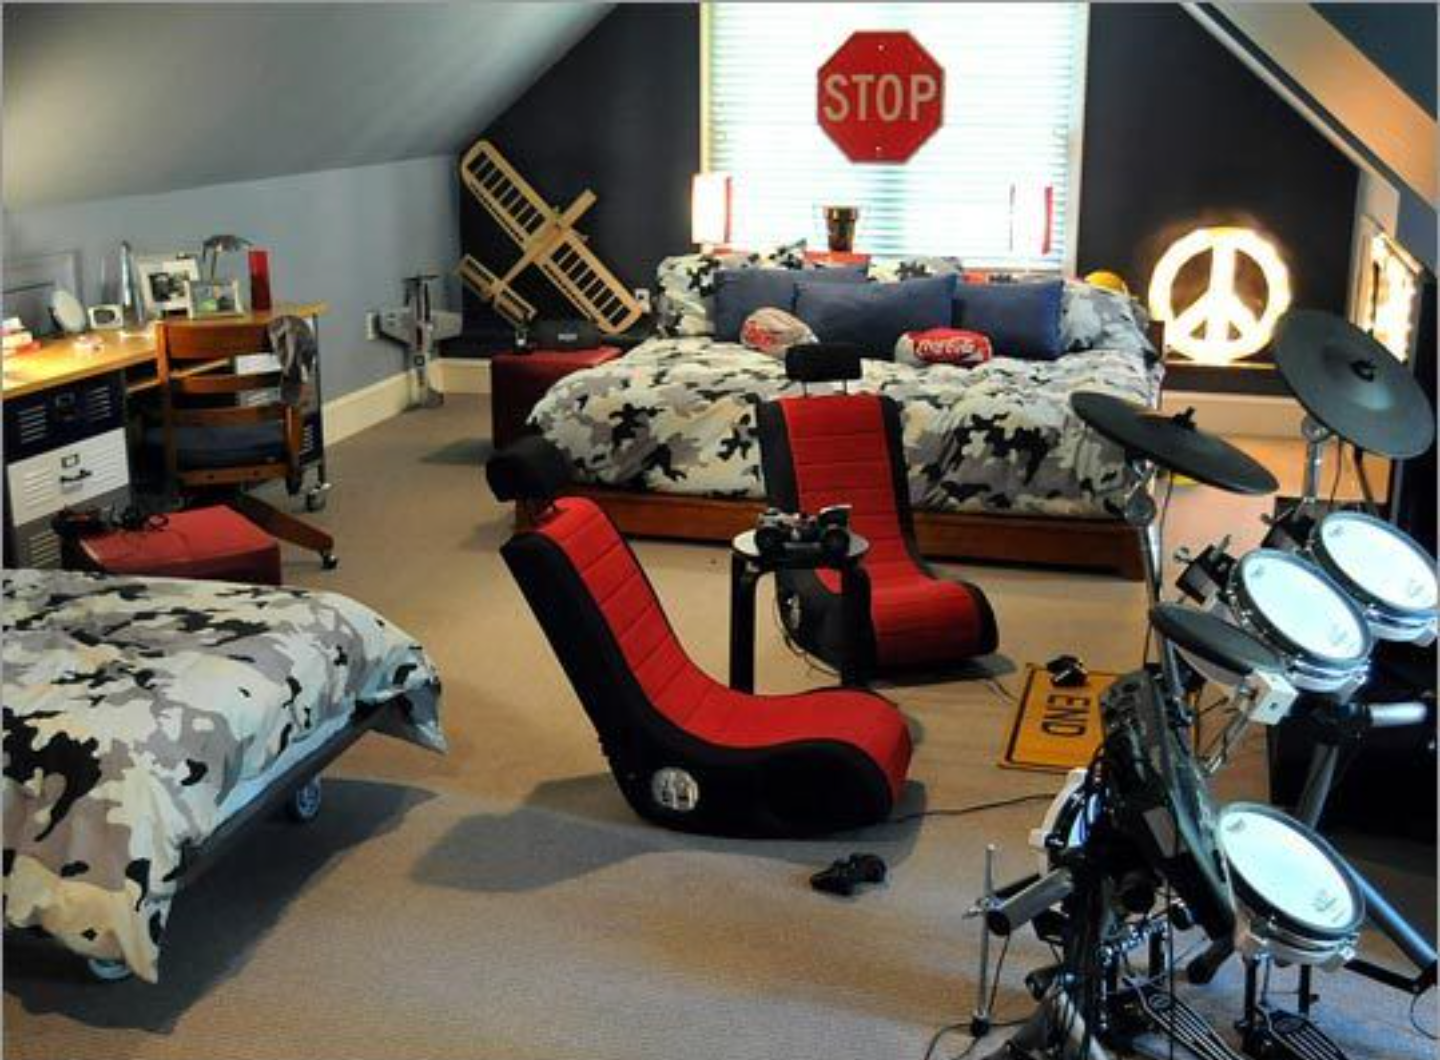 Teenage boys bedroom furniture - This Is The Perfect Shared Bedroom For Preteen Brothers Teens Judging By The Larger Teen Boy